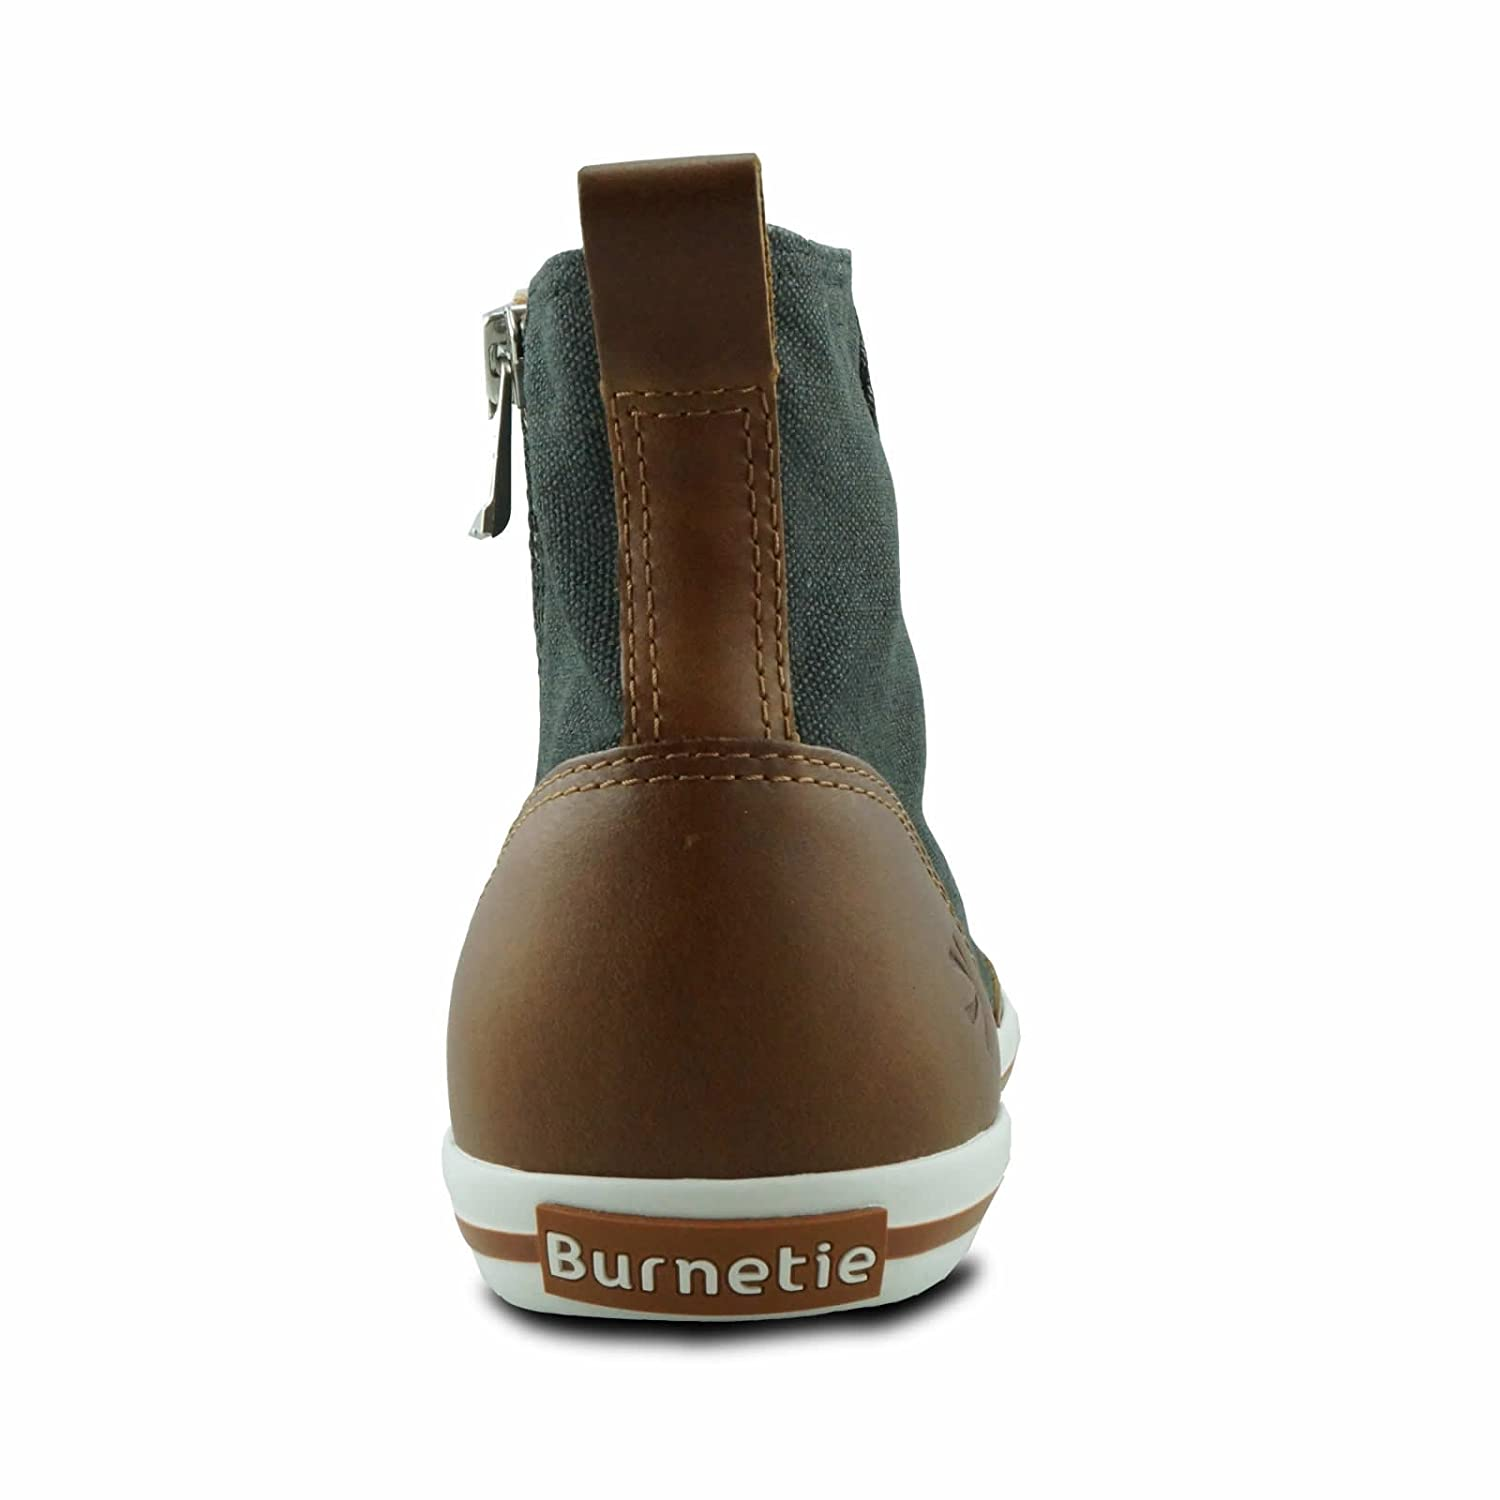 Burnetie Womens High Top Vintage Sneaker with Optional Side Zipper Closure